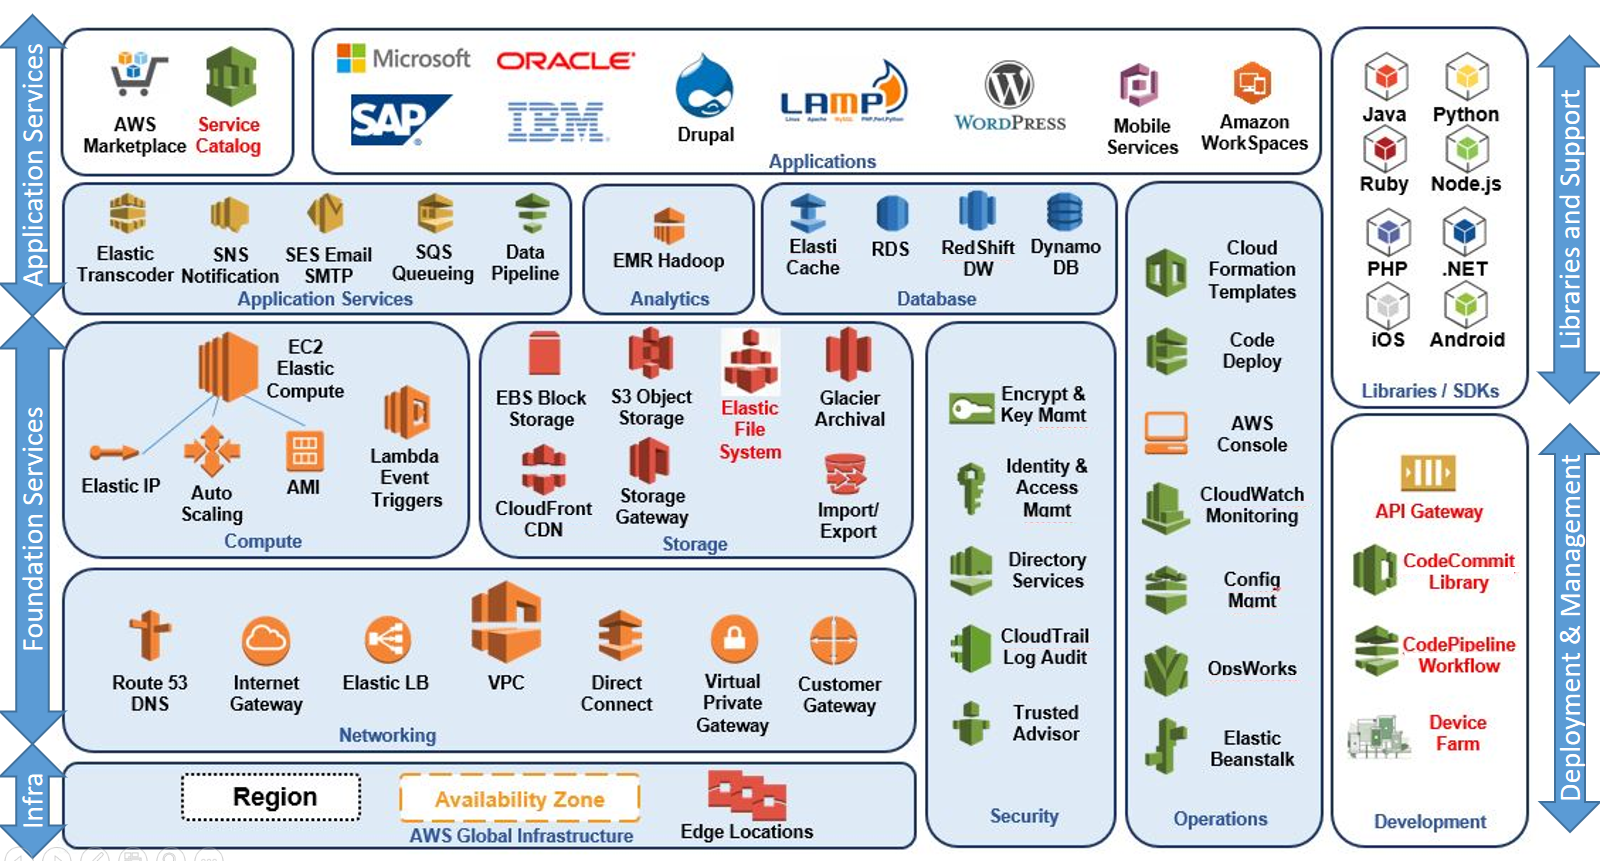 Aws distributed computing in java 9 book with safari you learn the way you learn best get unlimited access to videos live online training learning paths books interactive tutorials and more ccuart Images